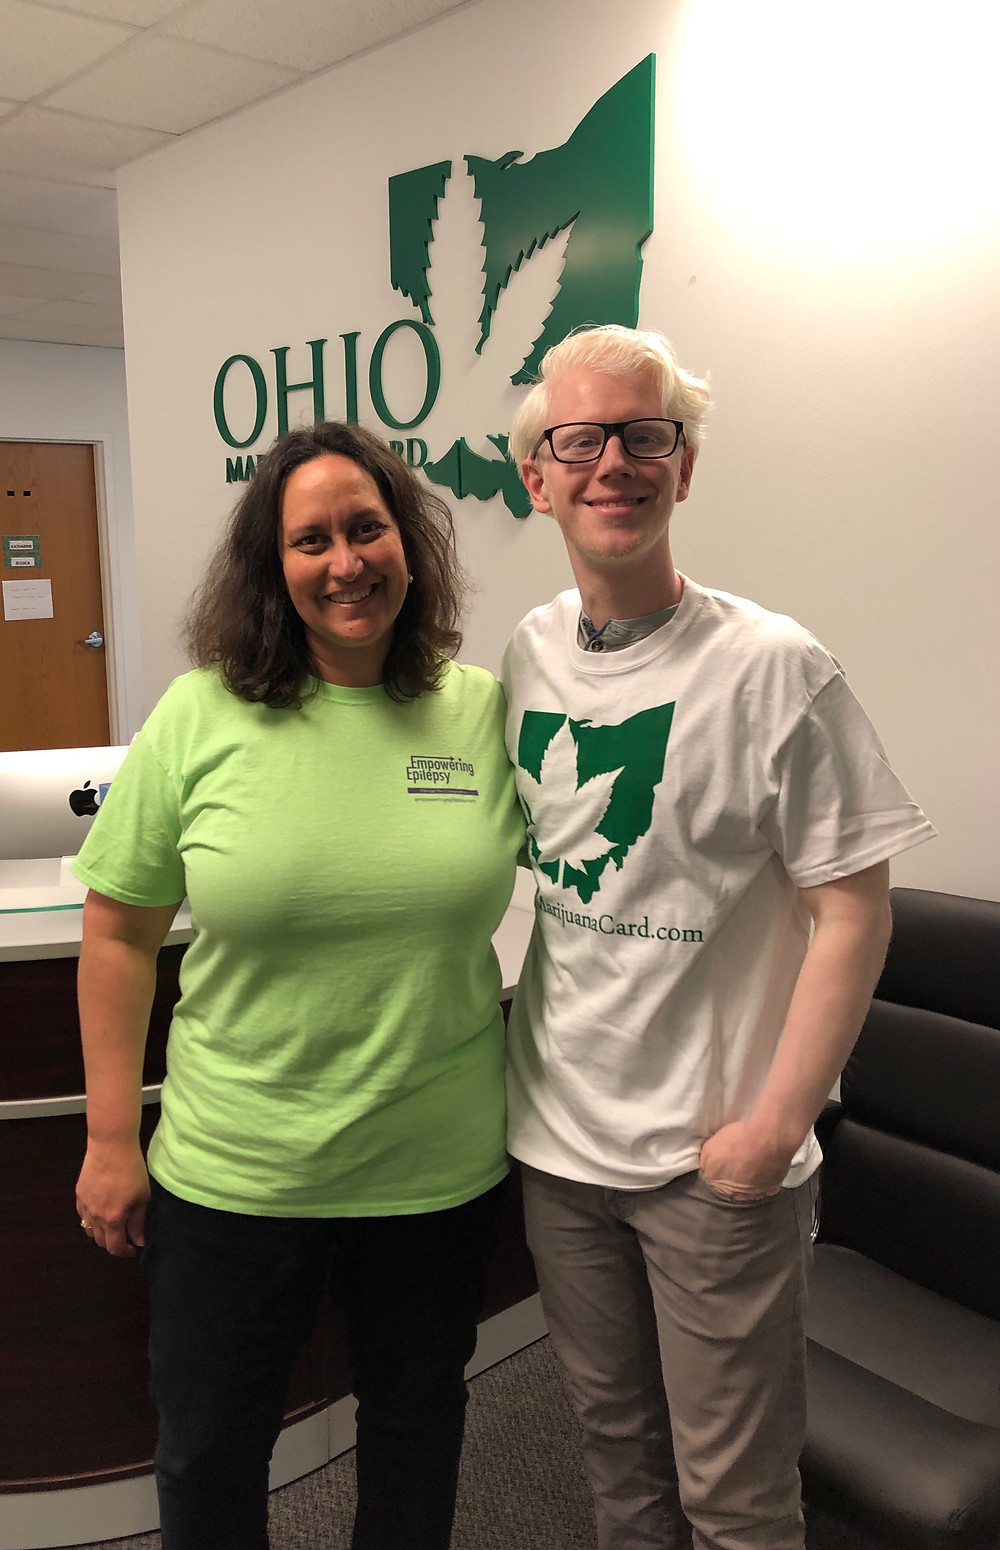 Ohio Marijuana Card President and Empowering Epilepsy Founder Pose for Picture